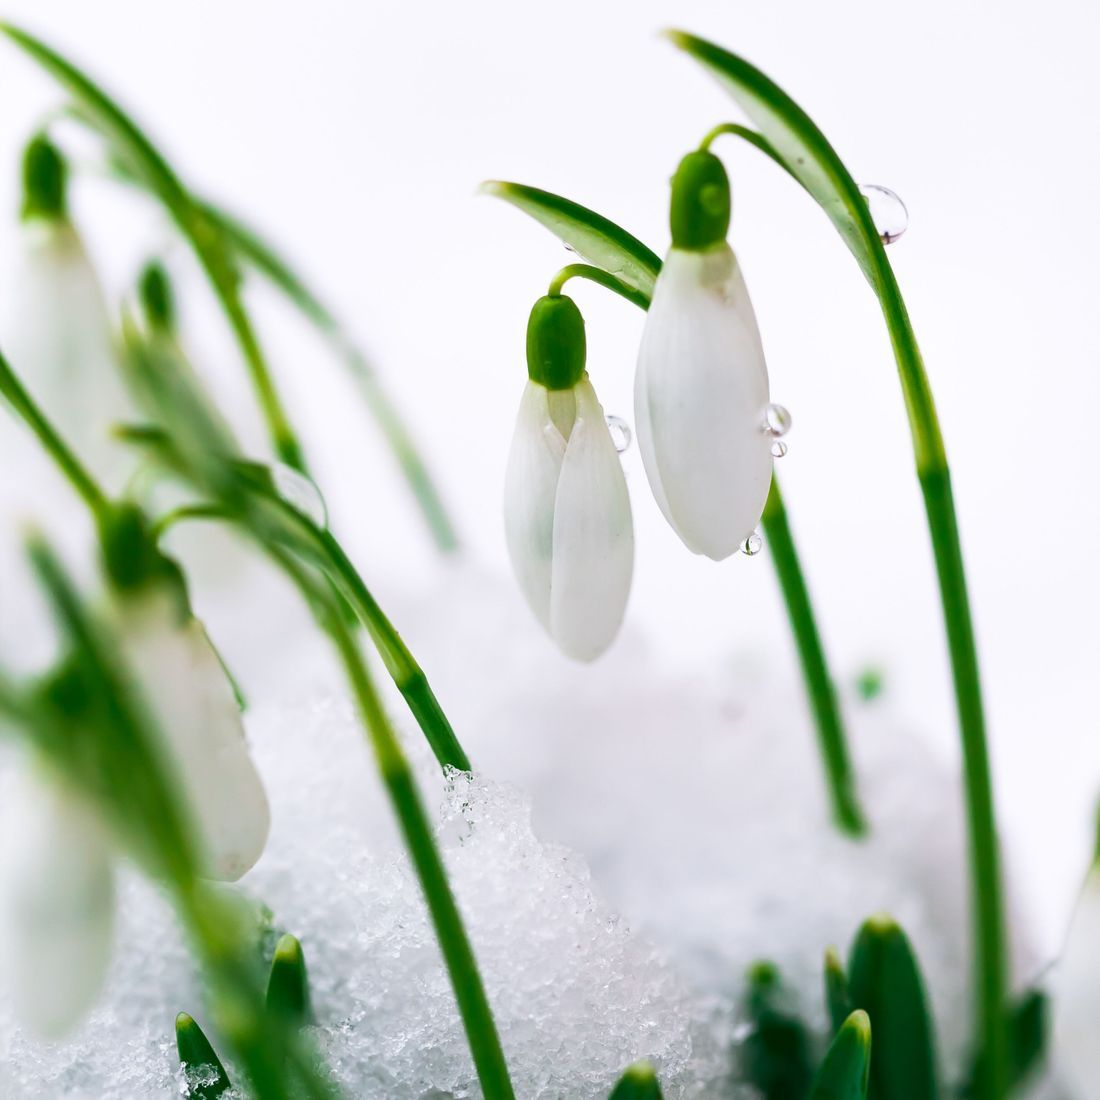 January flower, snowdrop flower, earliest flower to bloom after winter, what does a snowdrop flower represent, flowers of hope, flowers that represent hope, flowers that represent new horizons, early spring flowers, winter flowers